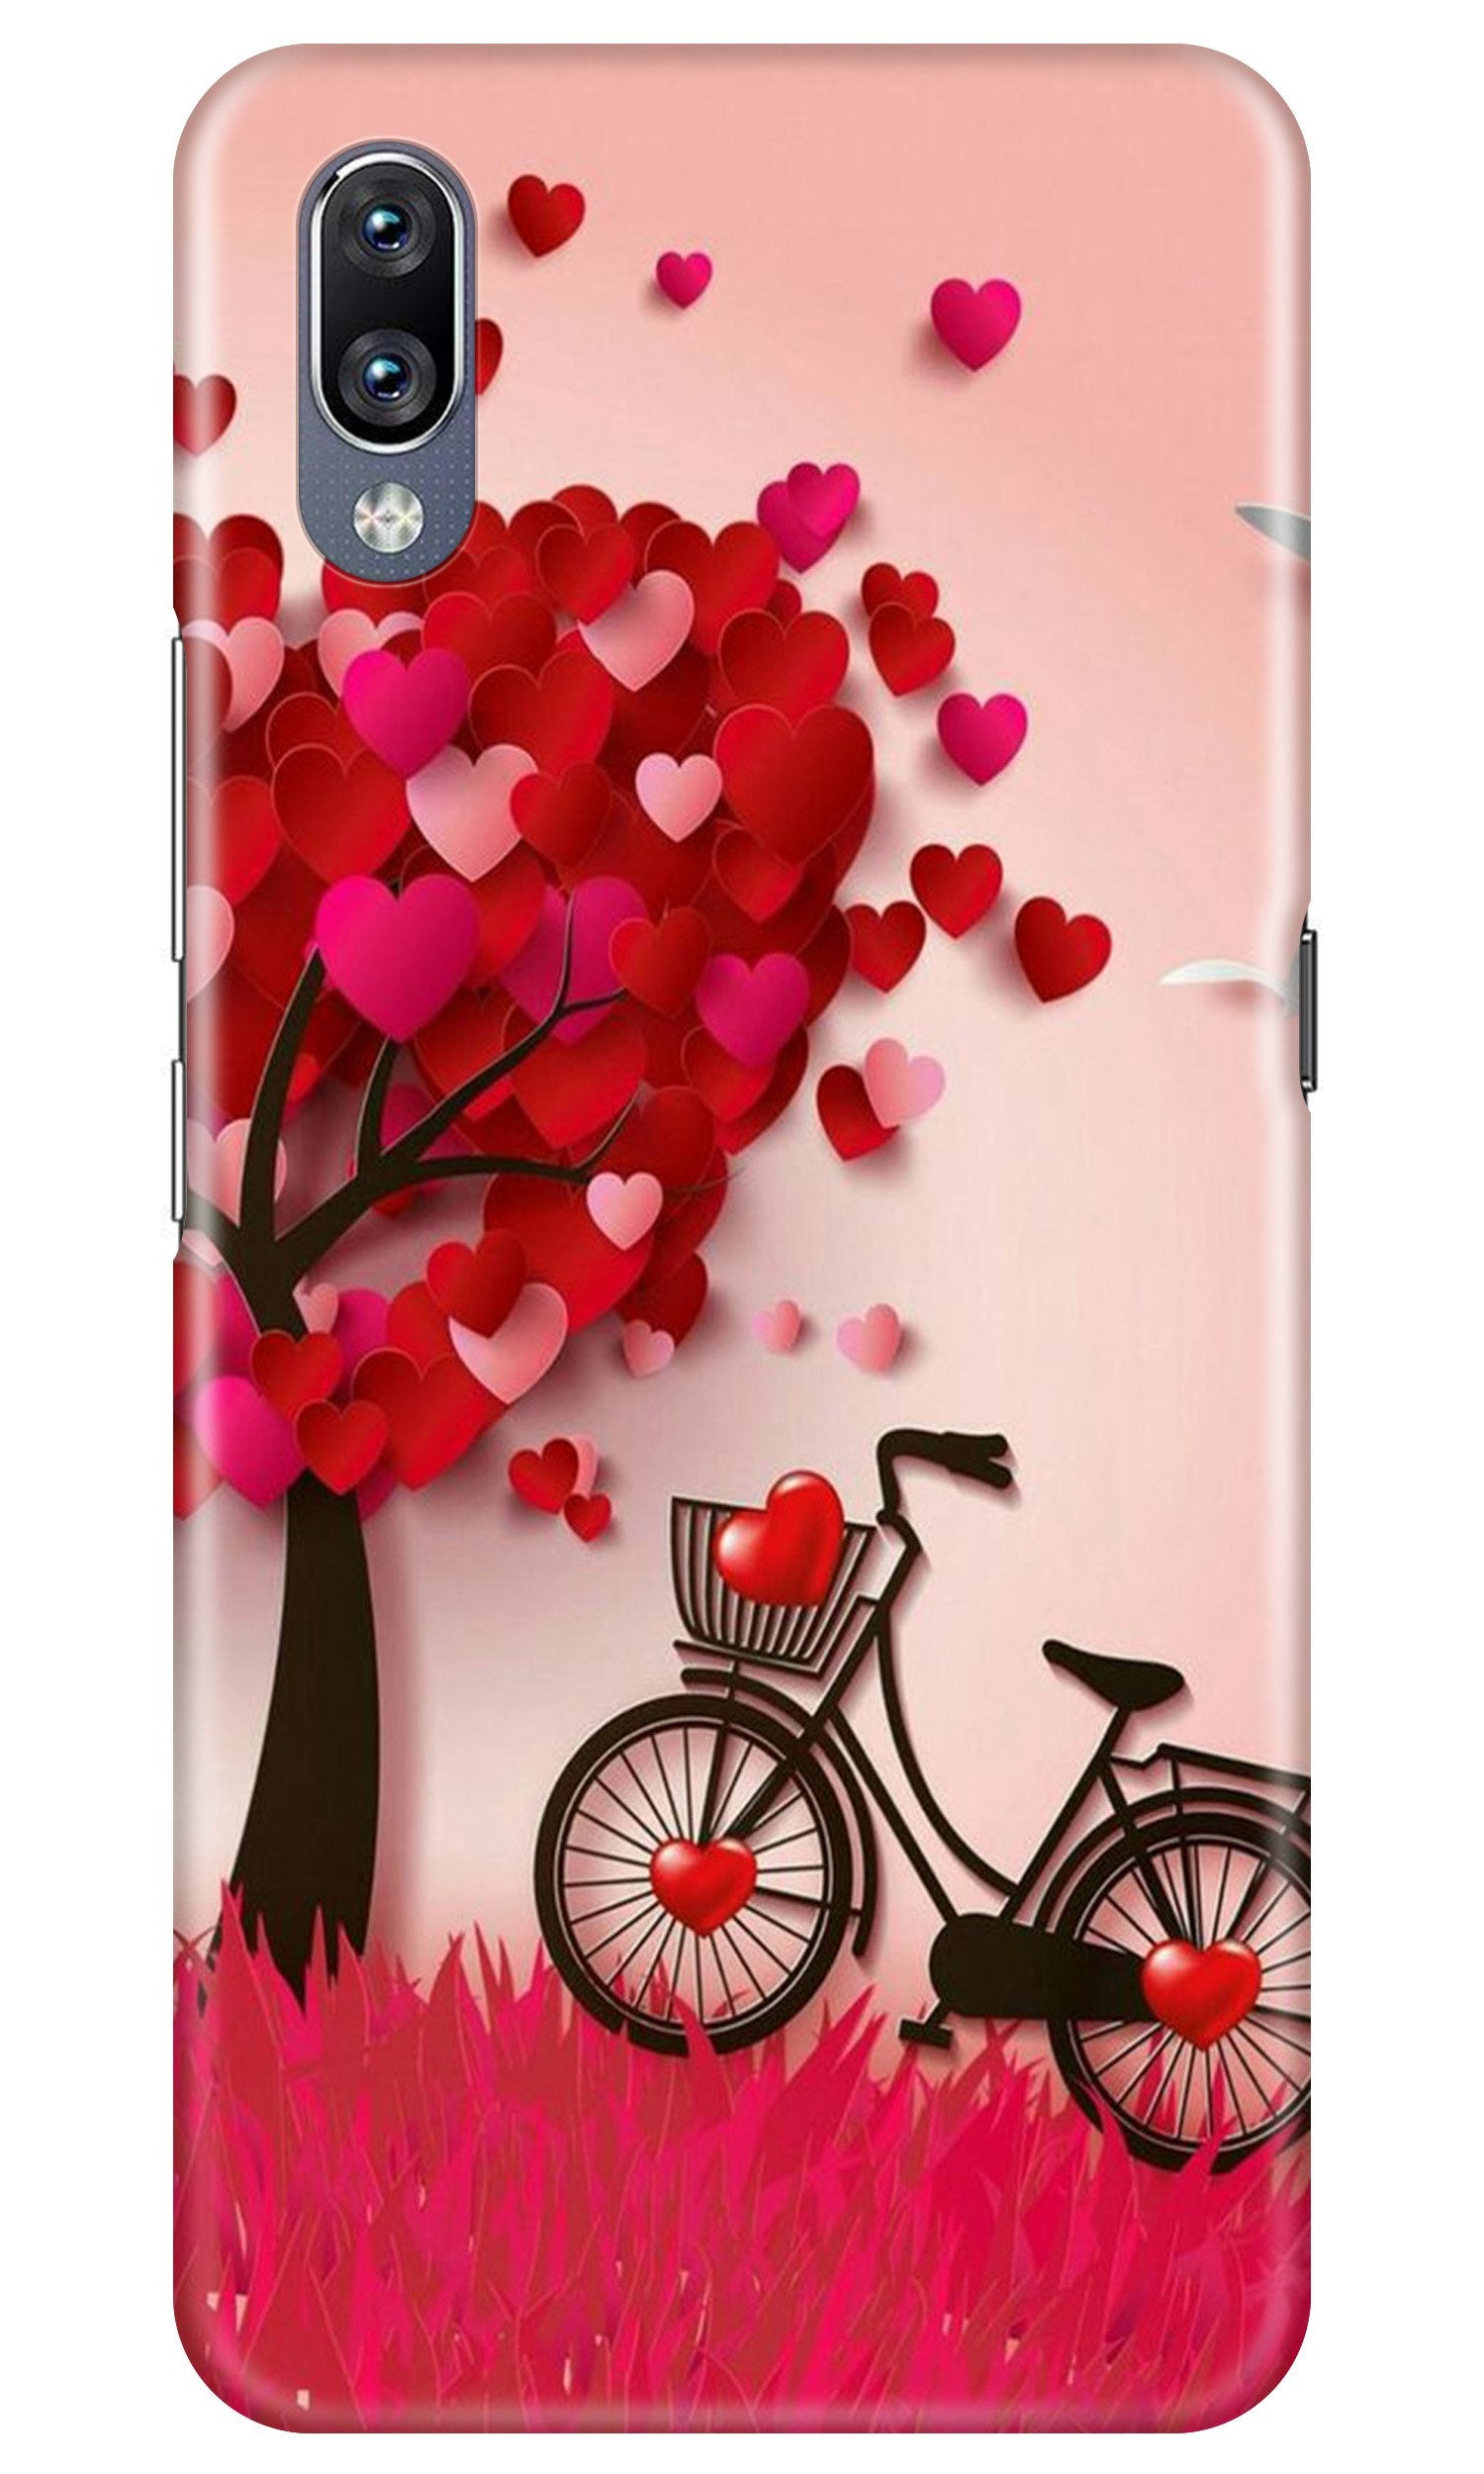 Red Heart Cycle Case for Vivo Y91i (Design No. 222)